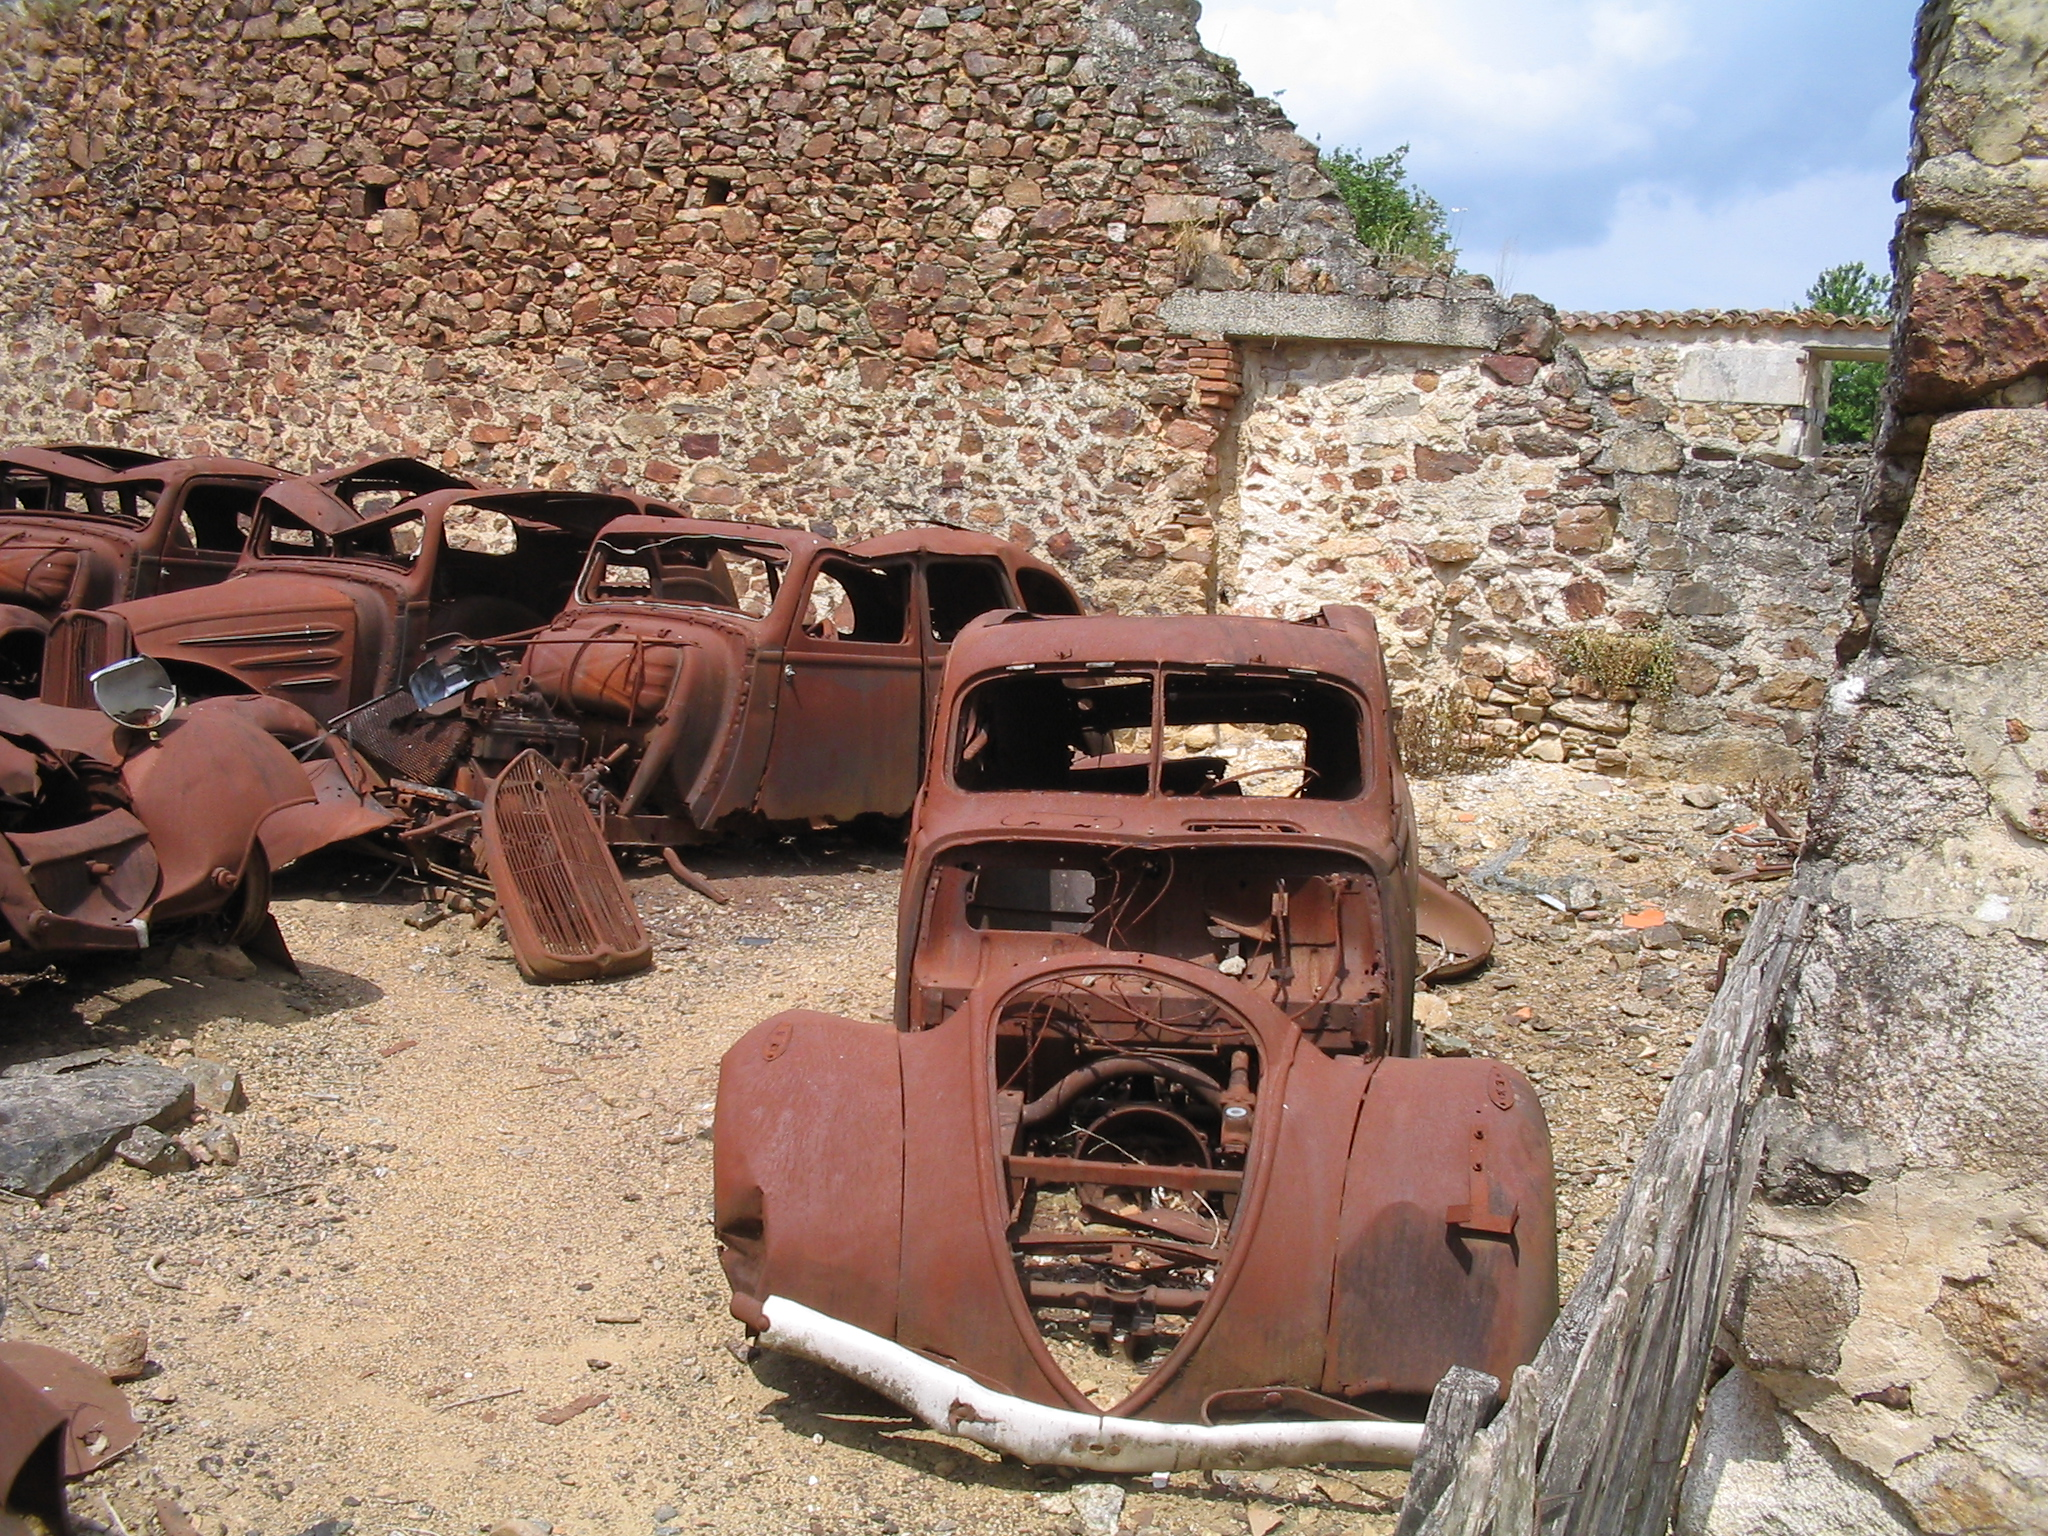 http://upload.wikimedia.org/wikipedia/commons/8/87/Oradour-sur-Glane-Cars-1263.jpg